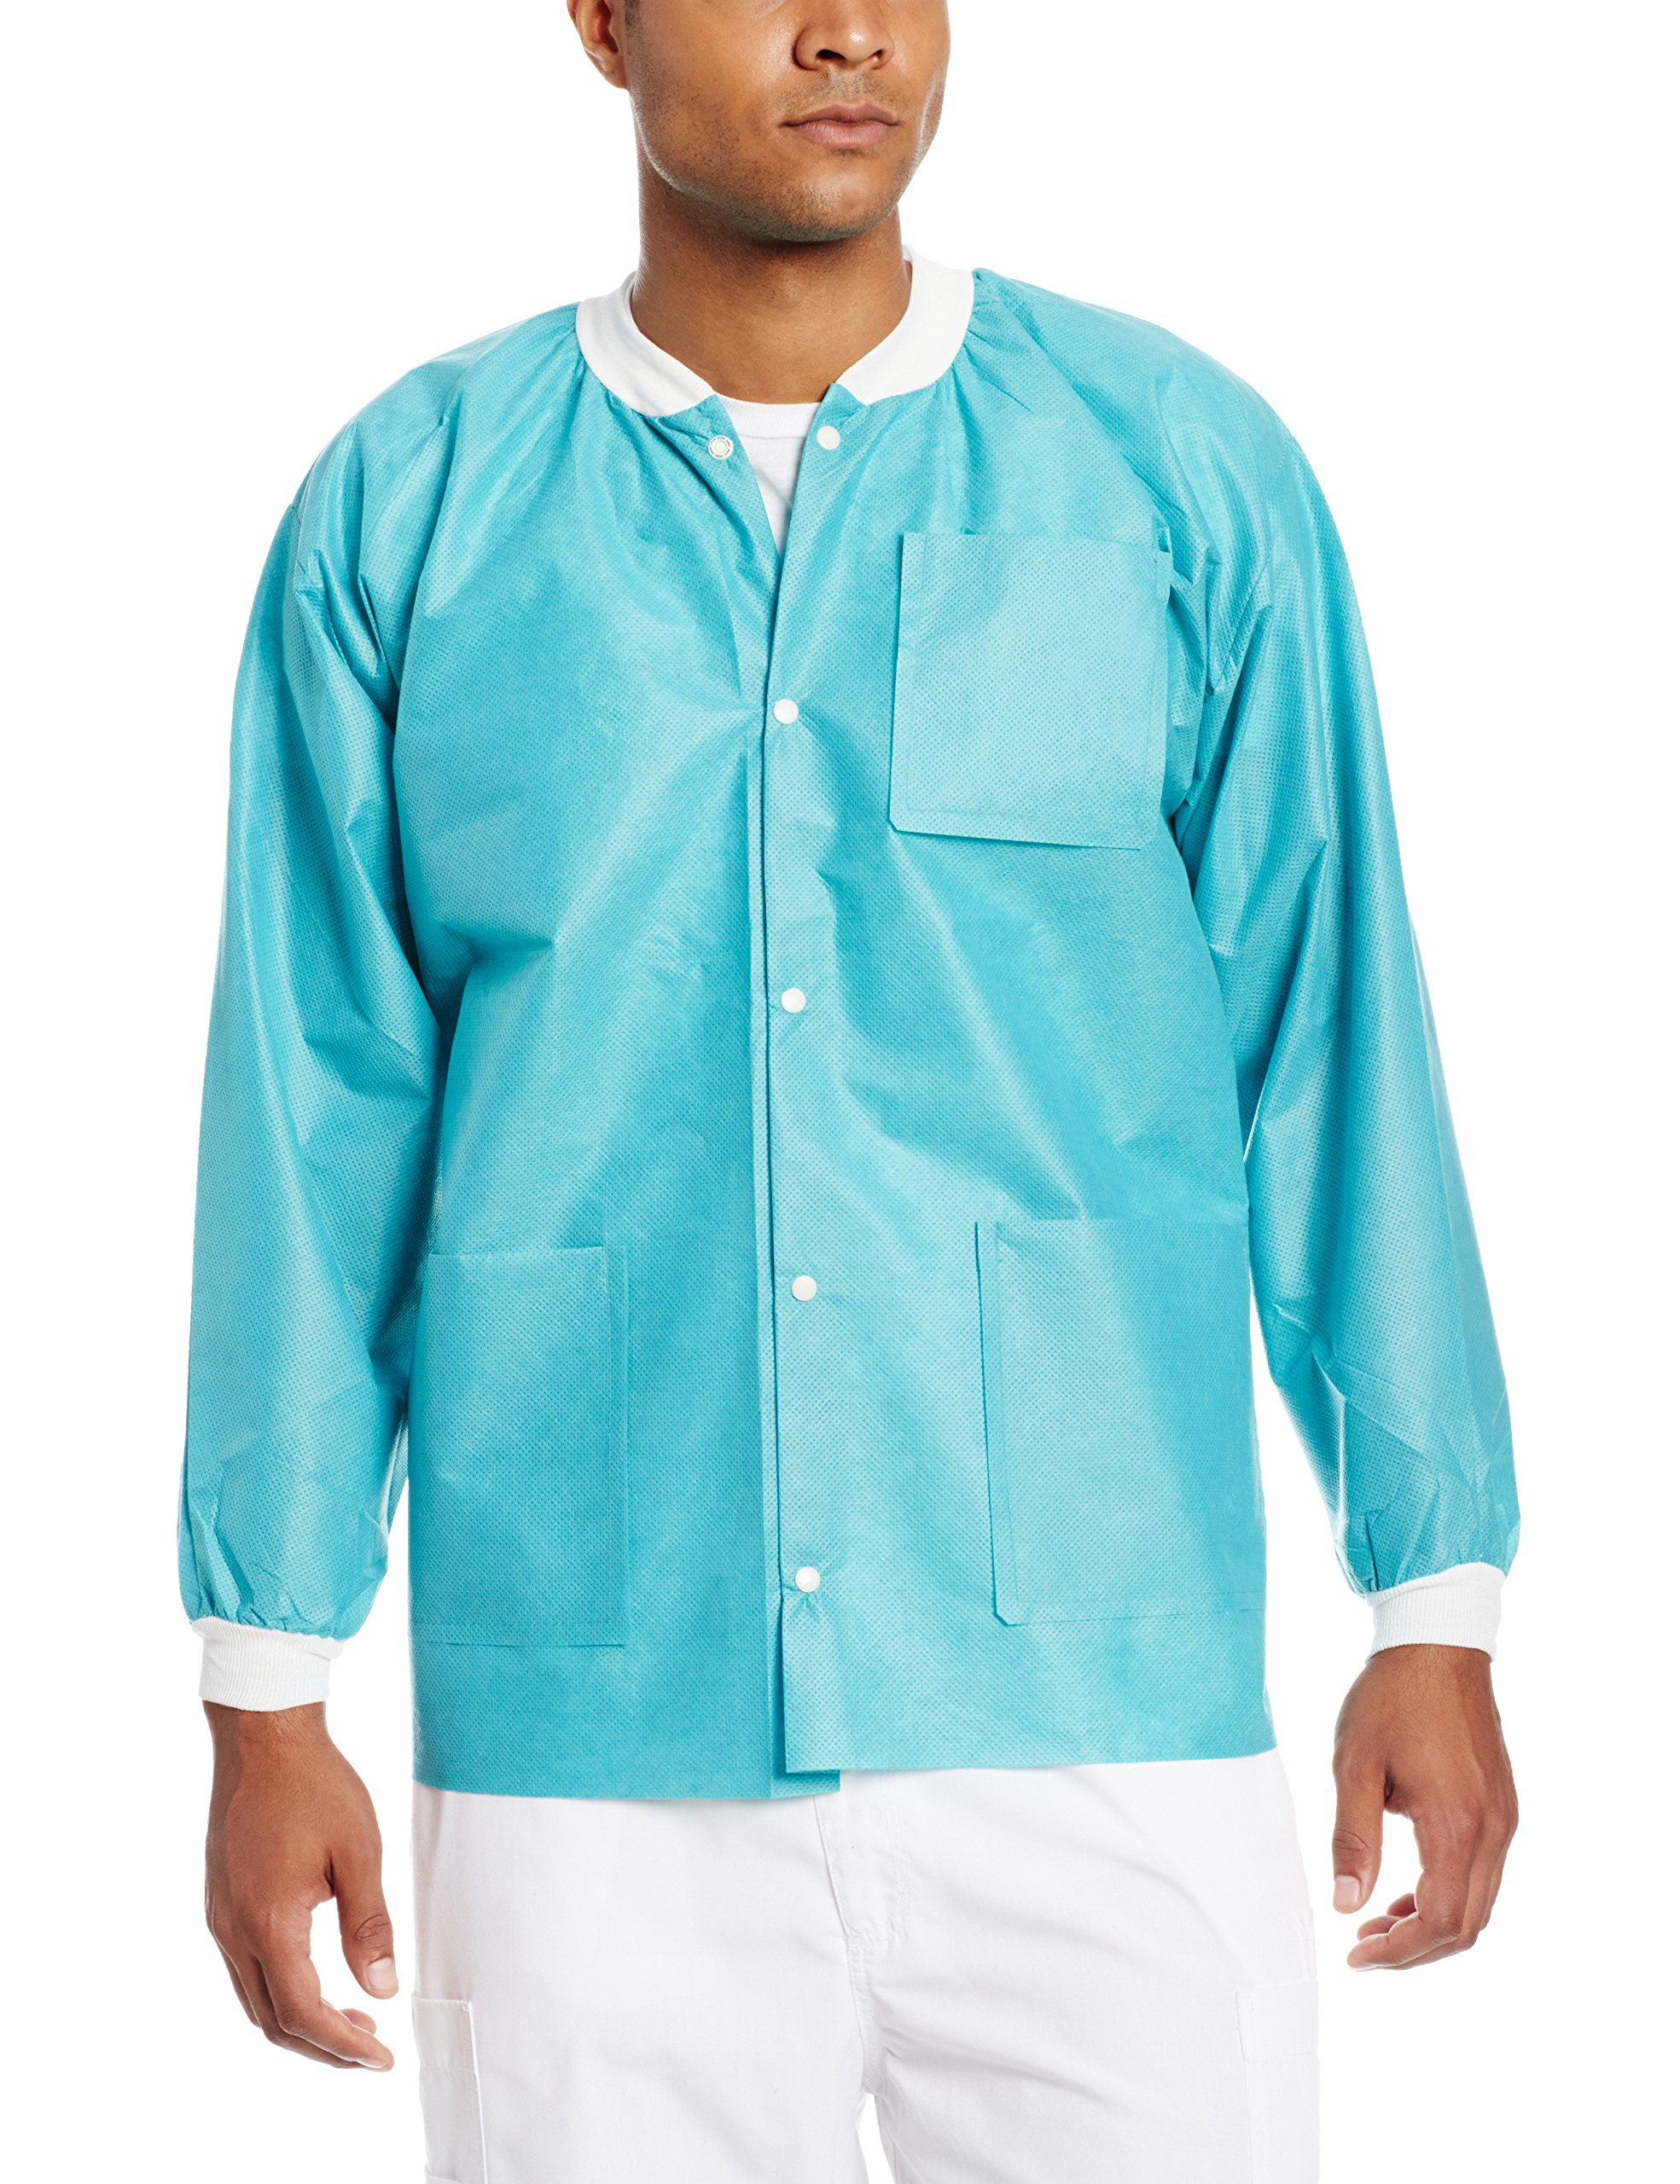 ValuMax 3630TEM Extra-Safe, Wrinkle-Free, Noble Looking Disposable SMS Hip Length Jacket, Teal, M, Pack of 10